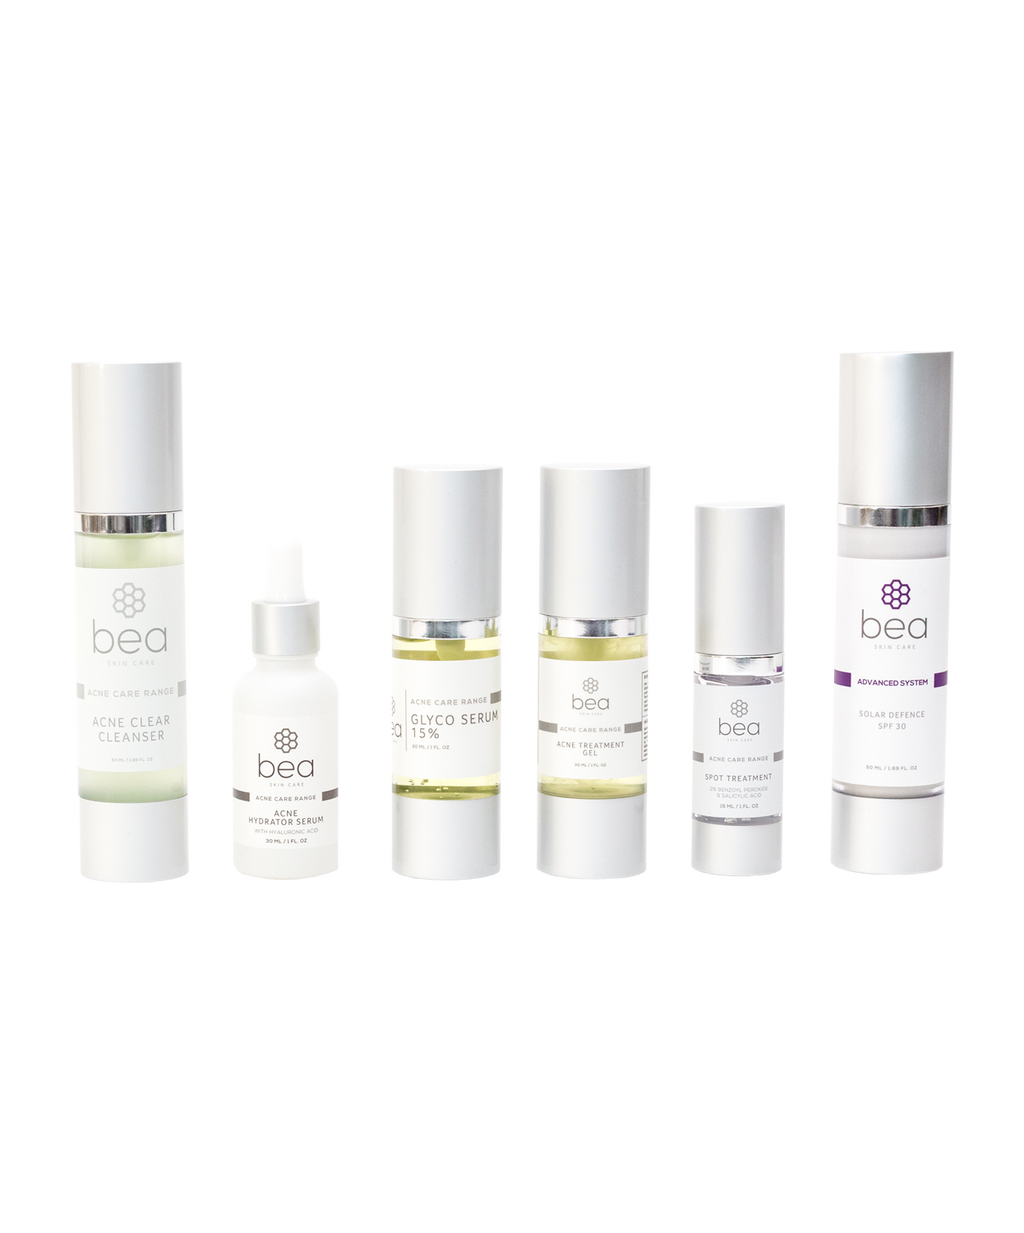 Acne Care Plus Kit Sets bea Skin Care